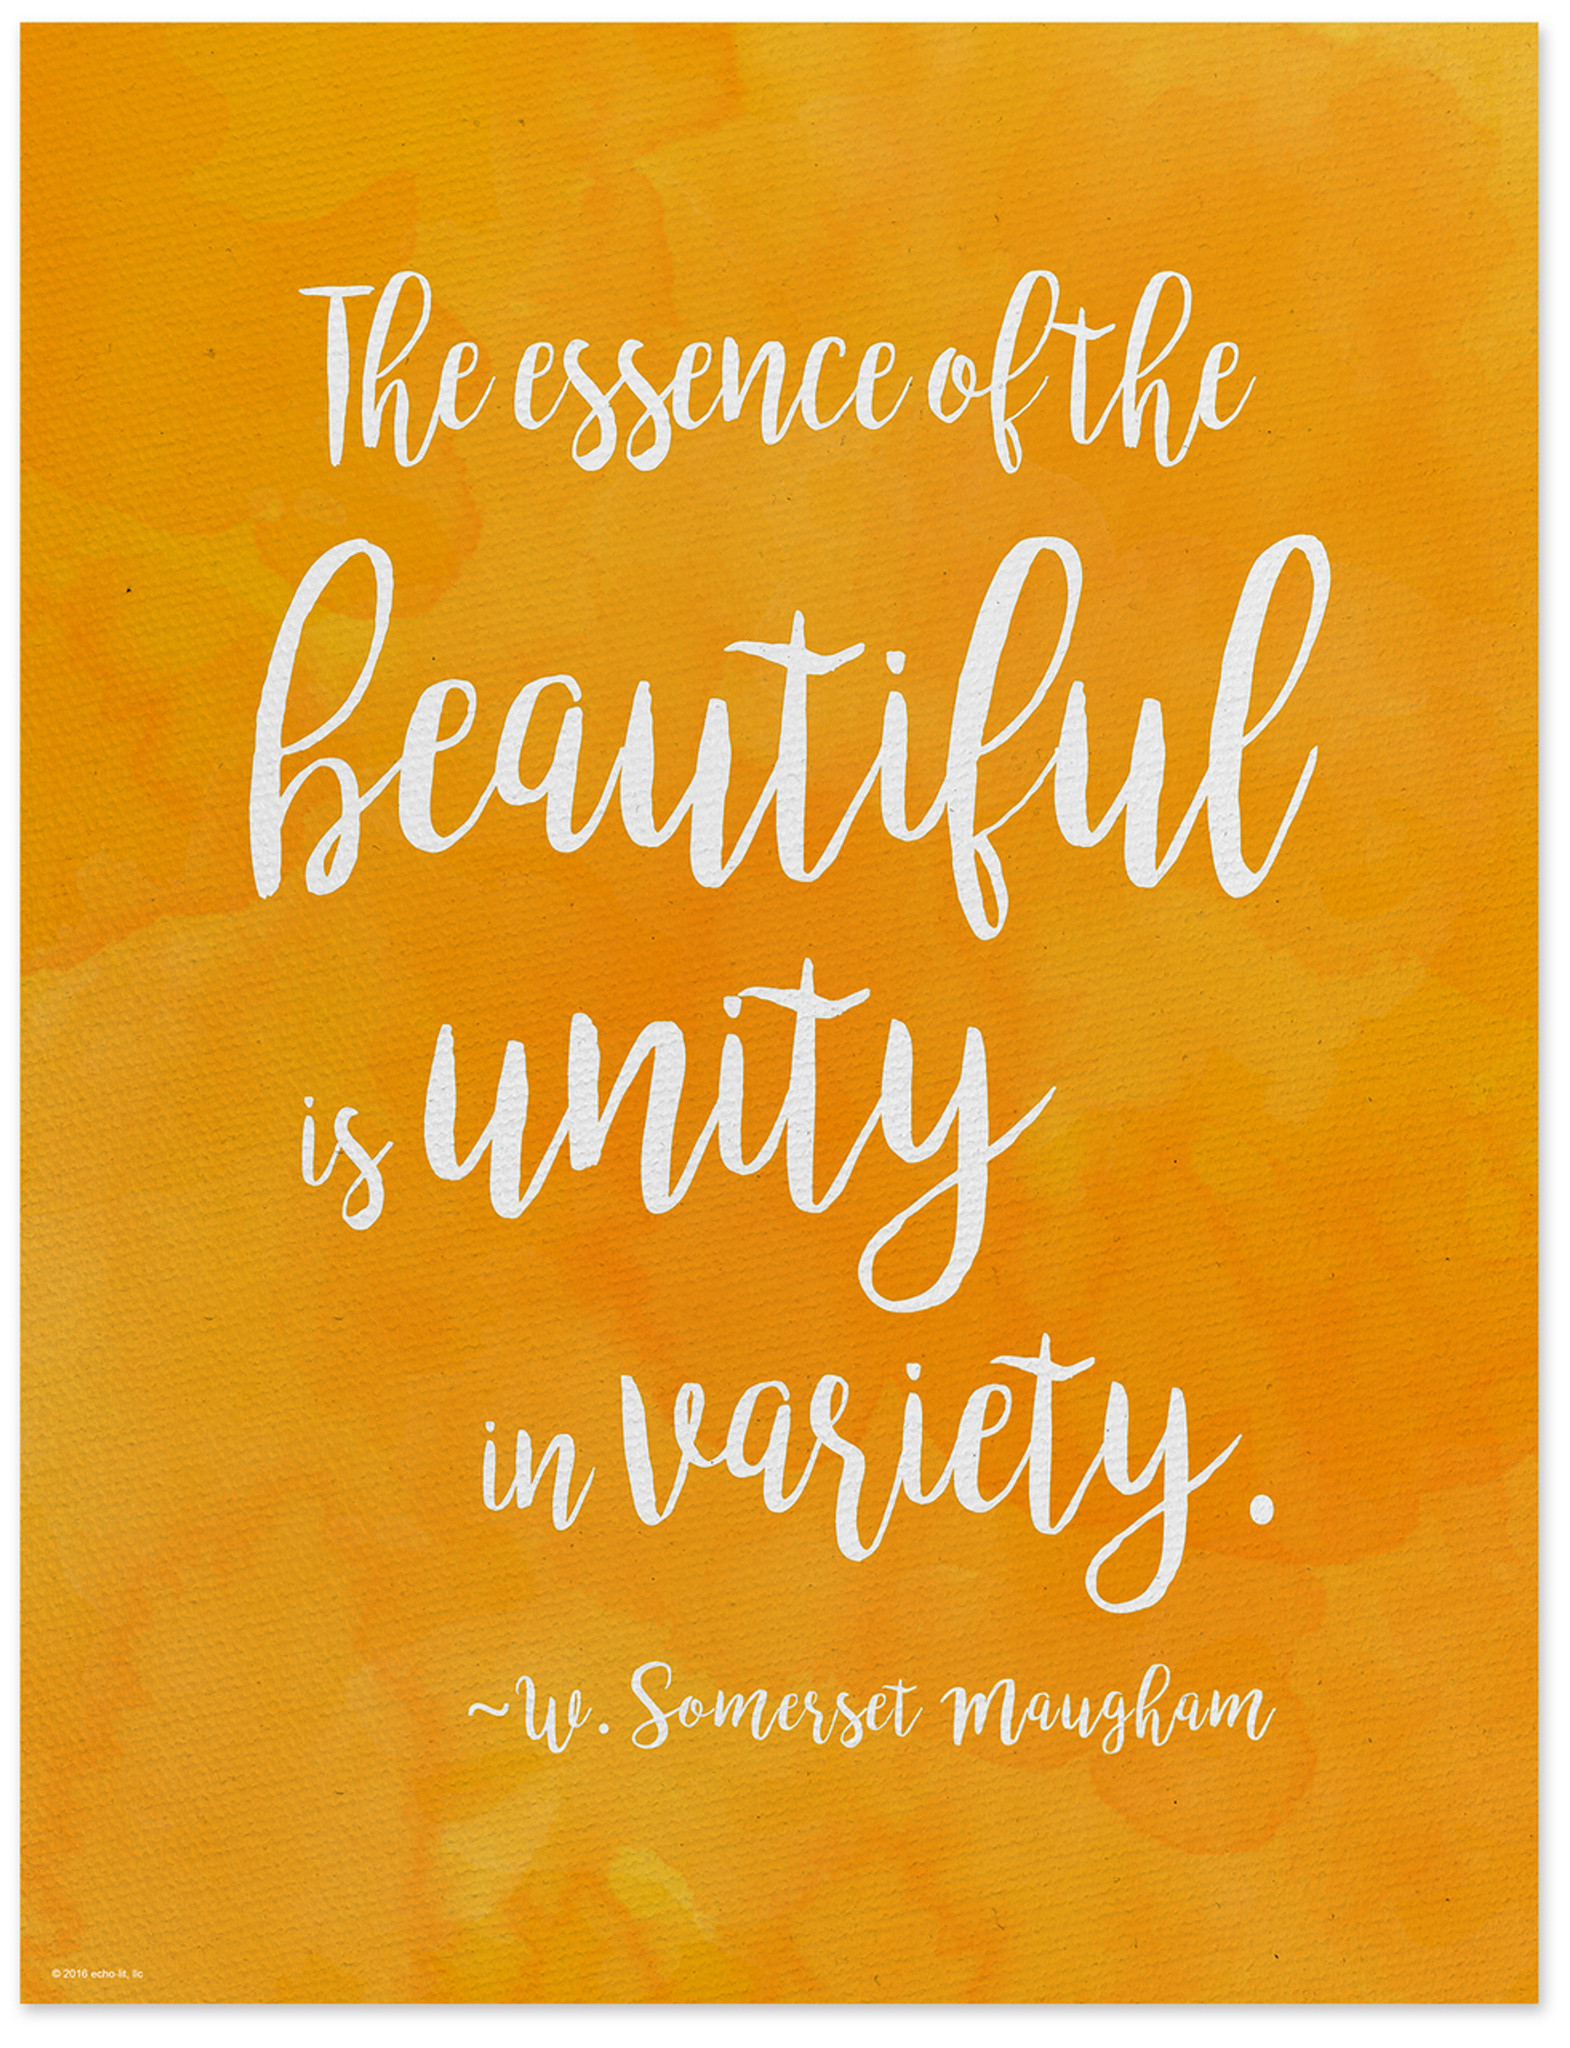 Diversity Quotes Unity in Variety   W. Somerset Maugham Diversity Quote Poster  Diversity Quotes